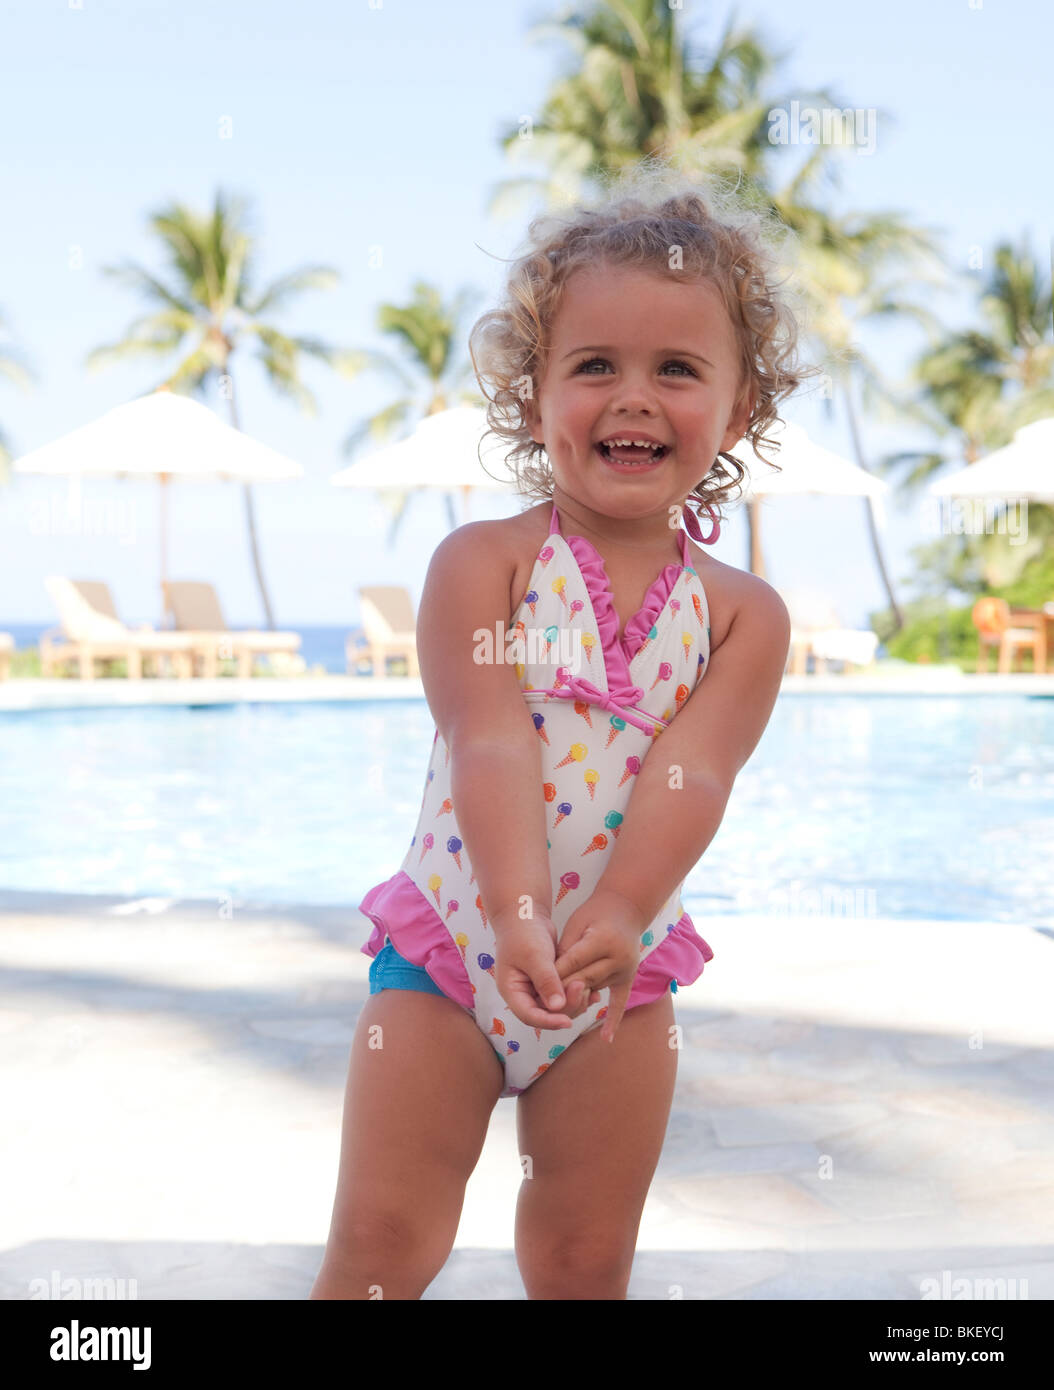 Happy toddler girl in bathing suit - Stock Image